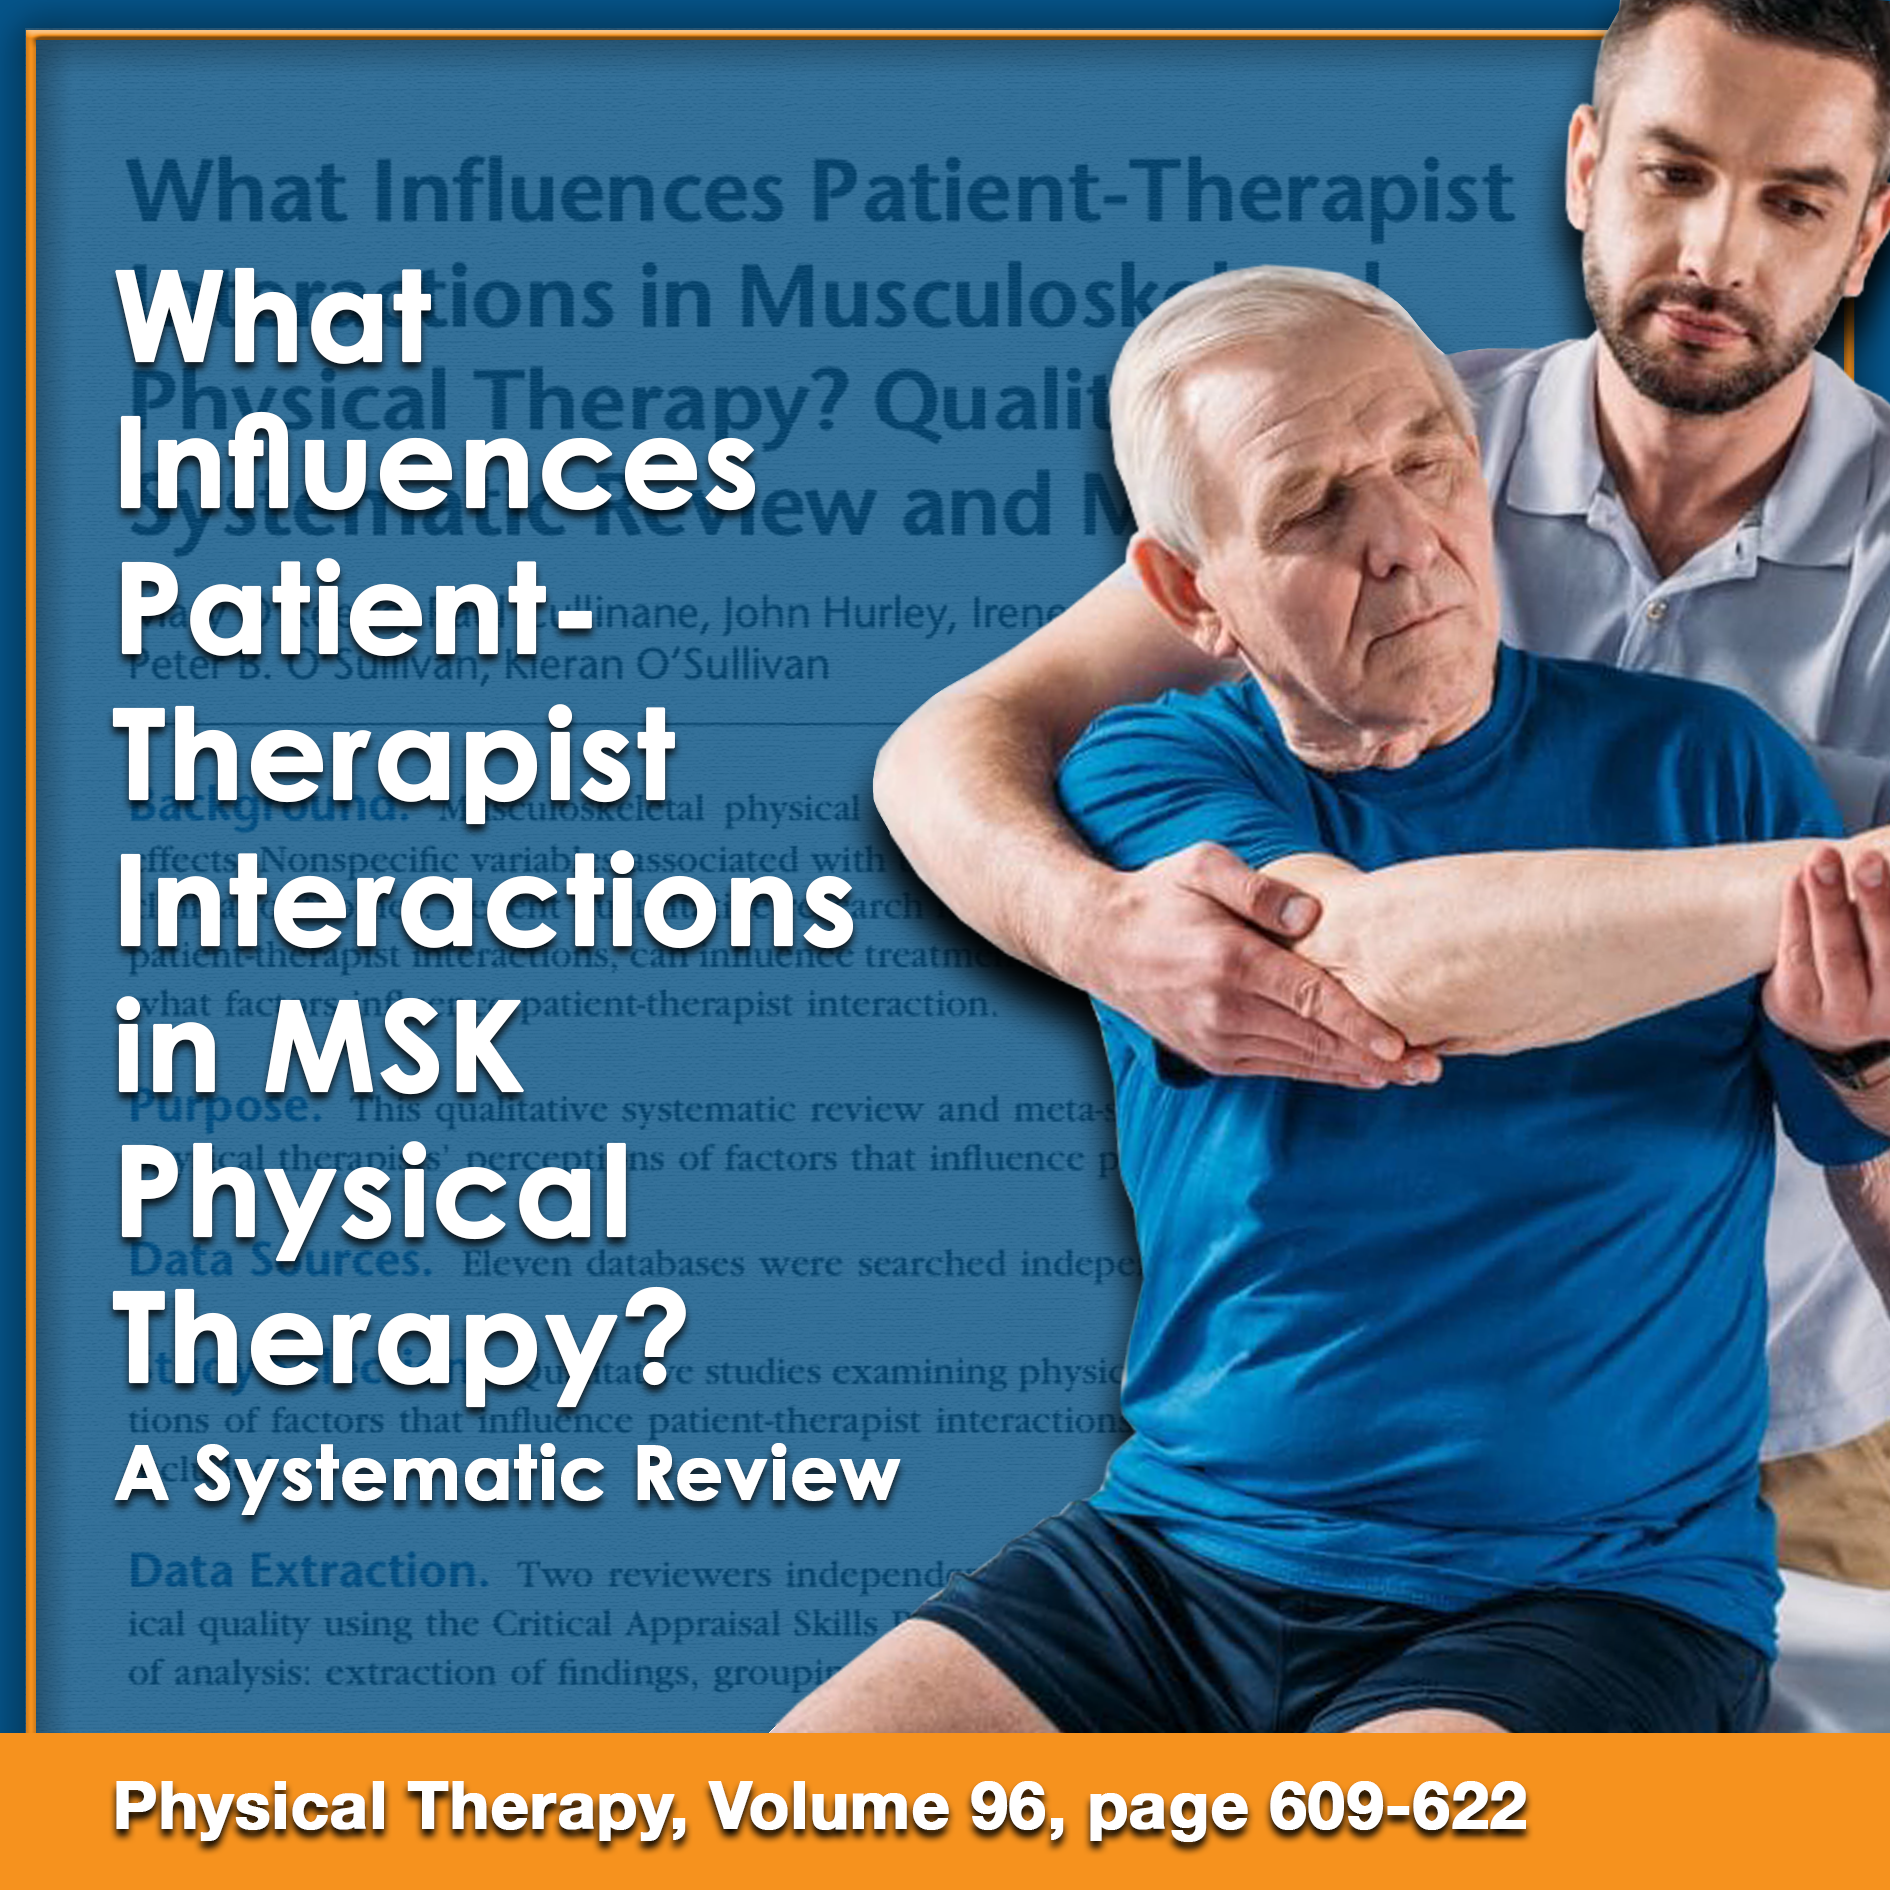 What Influences Patient-Therapist Interactions in Musculoskeletal Physical Therapy? A Qualitative Systematic Review and Meta-Synthesis.